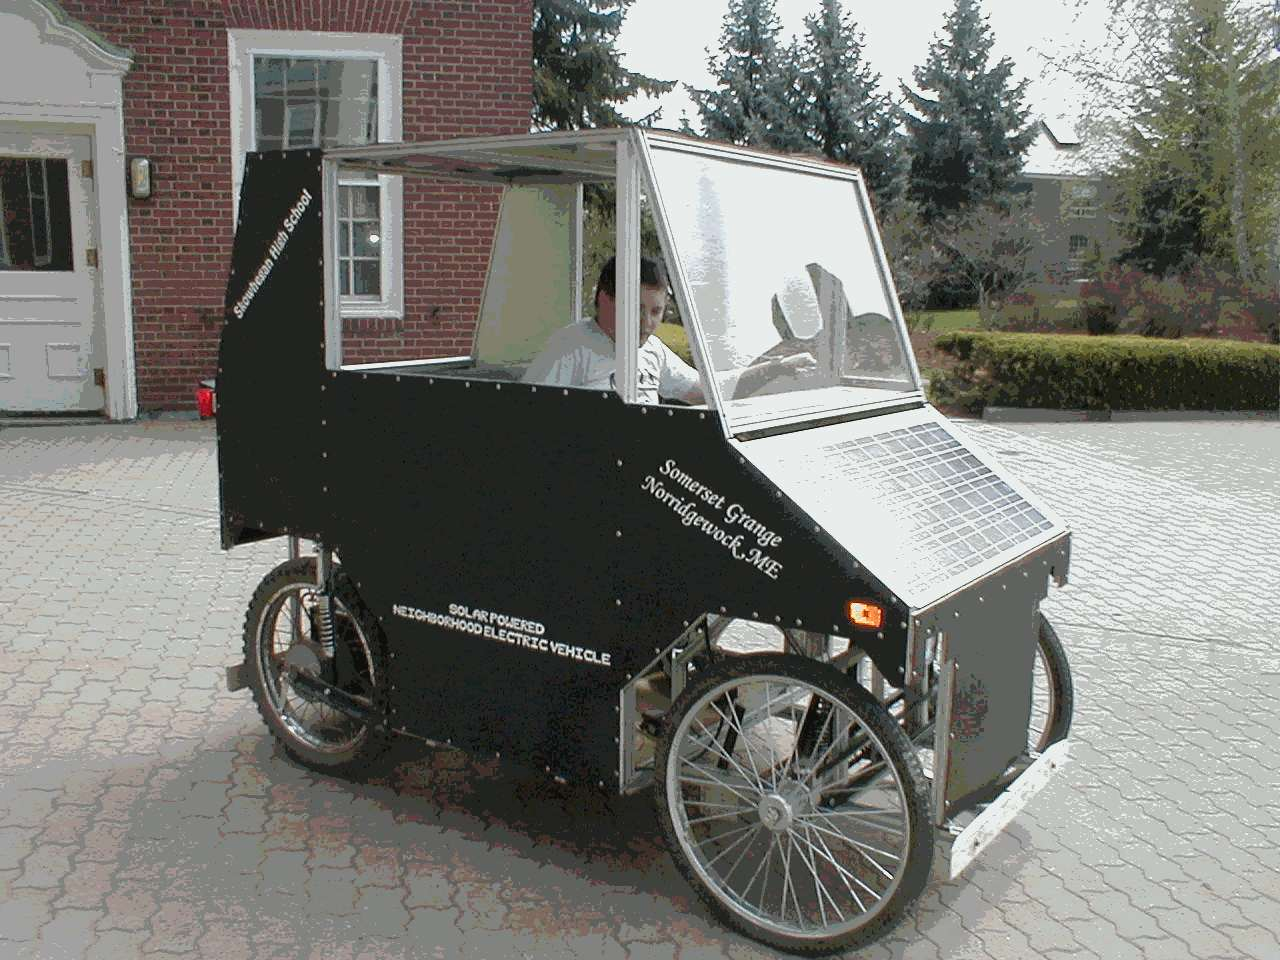 Prototype Solar NEV on homemade wind turbine designs, solar panel car designs, homemade robotic arm designs,